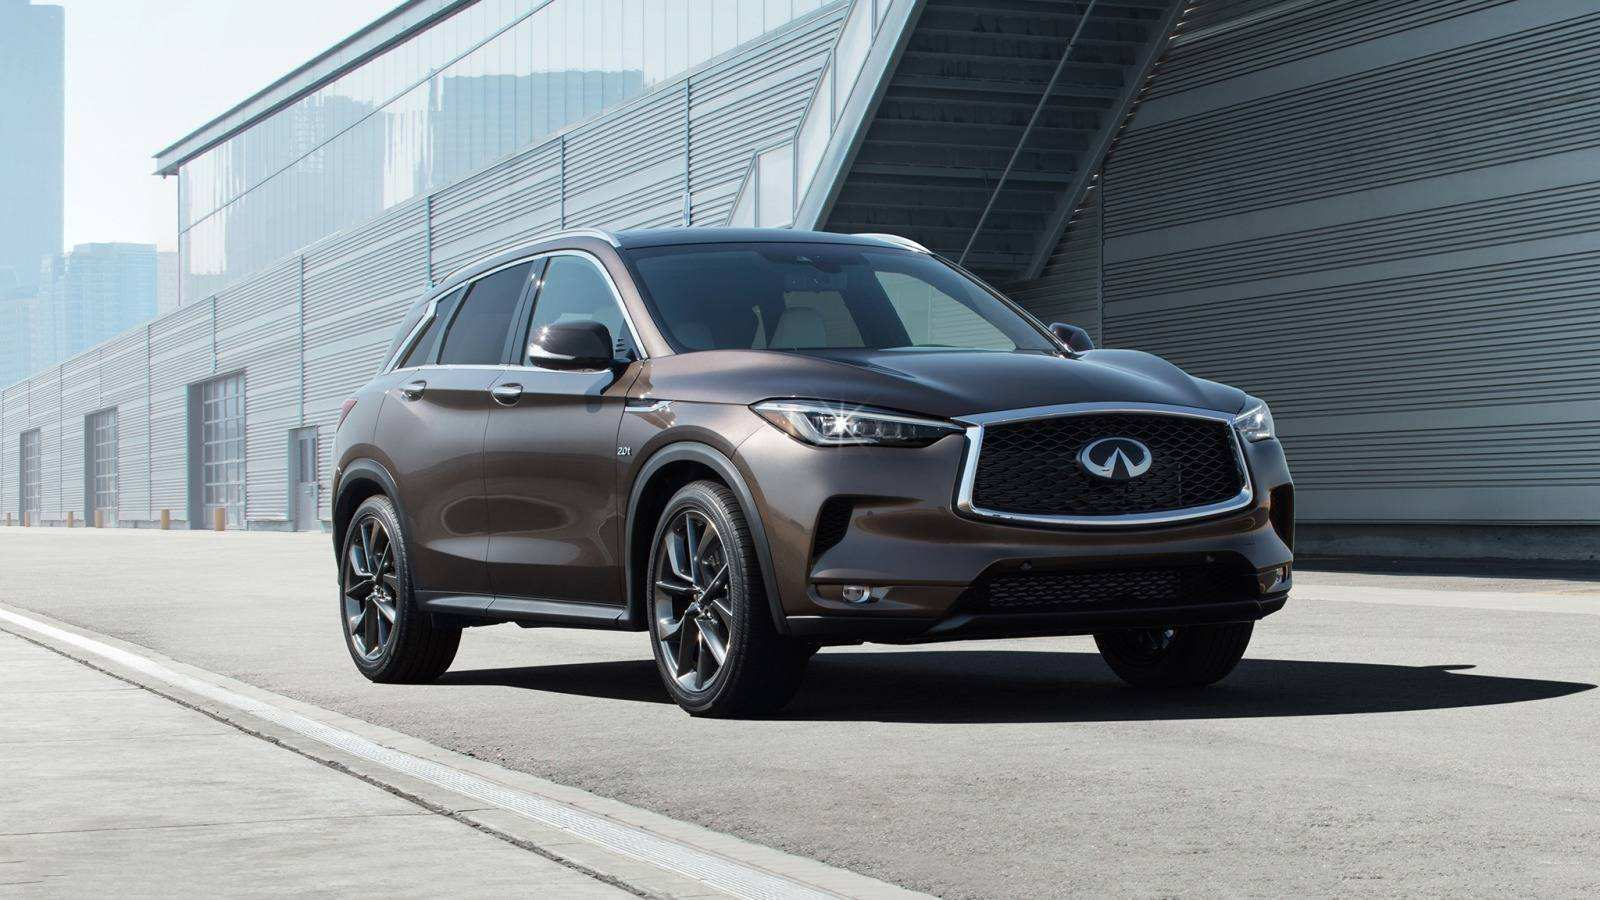 52 Great Best 2019 Infiniti Qx50 Essential Awd New Review Specs and Review by Best 2019 Infiniti Qx50 Essential Awd New Review